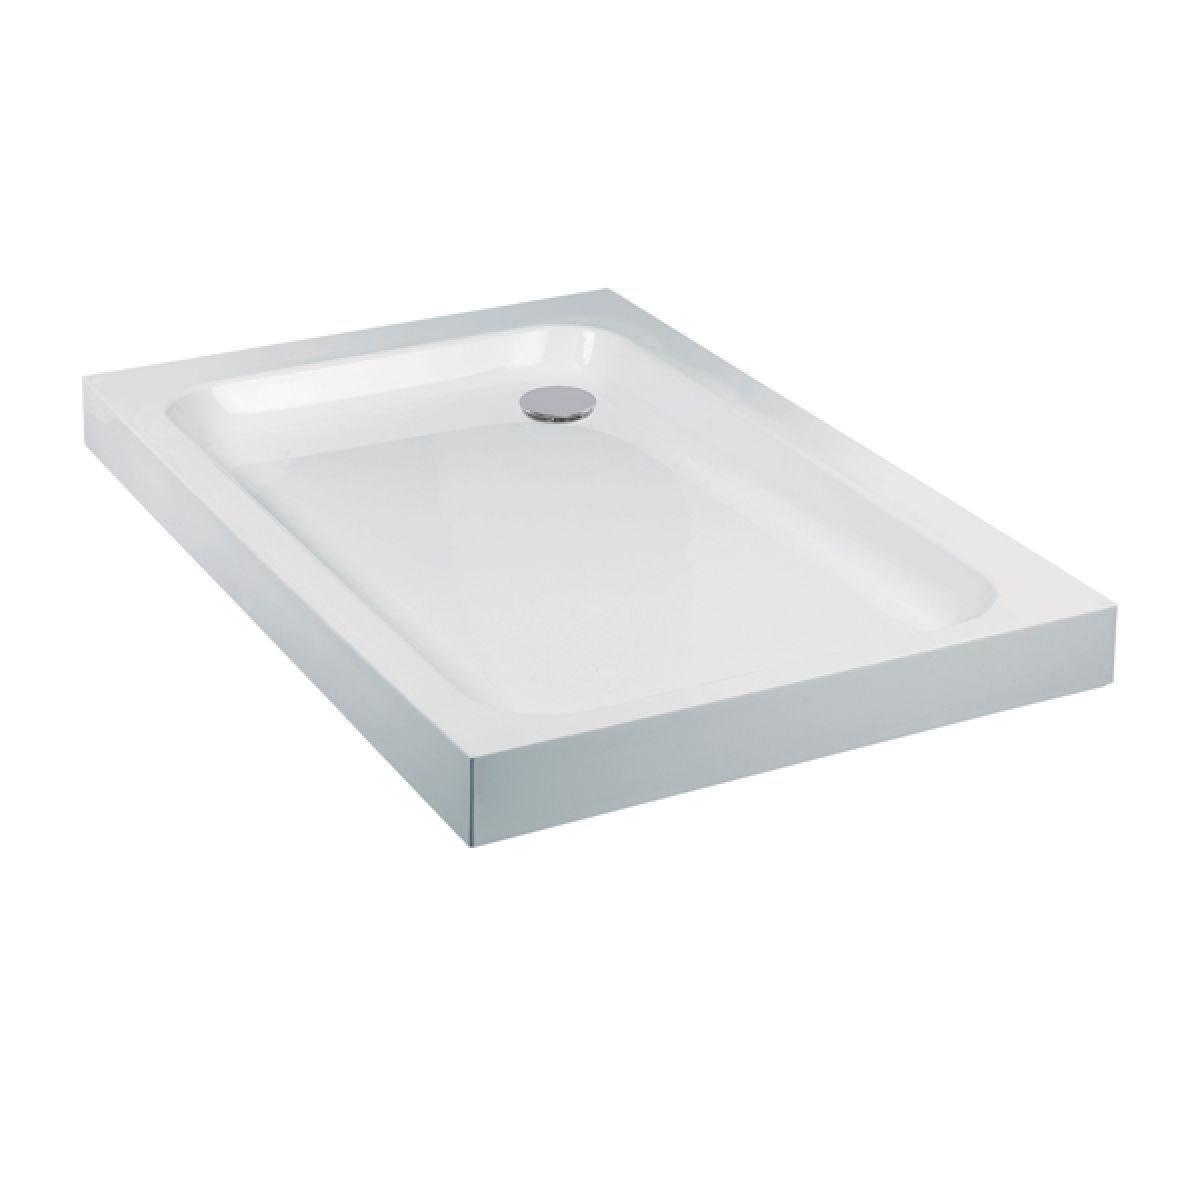 Frontline Standard Rectanglular Shower Tray 1400 x 800mm